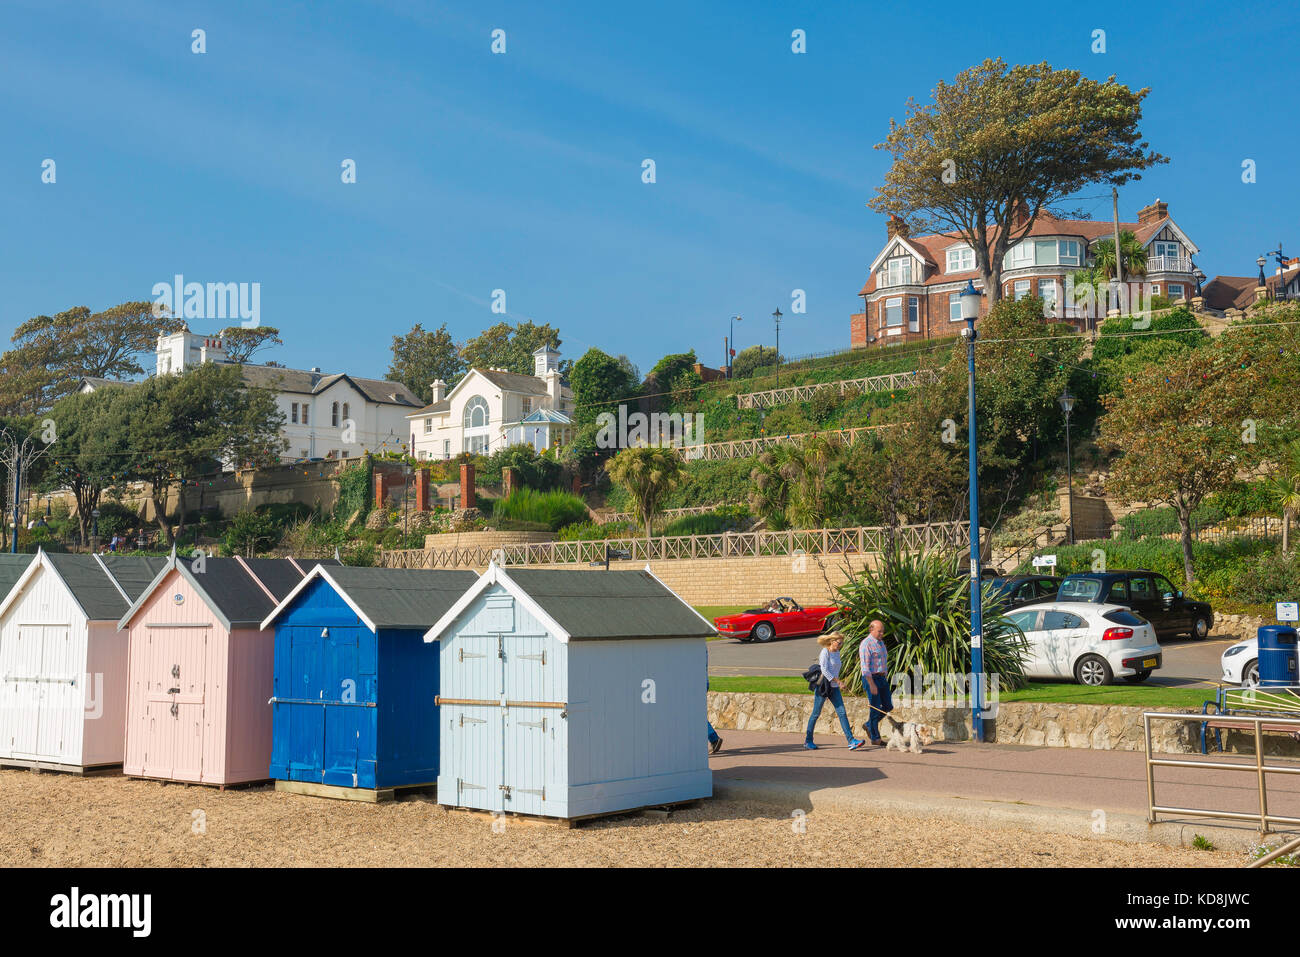 Felixstowe Suffolk coast, view of beach huts and the Esplanade Gardens along the seafront at Felixstowe, Suffolk,UK. - Stock Image